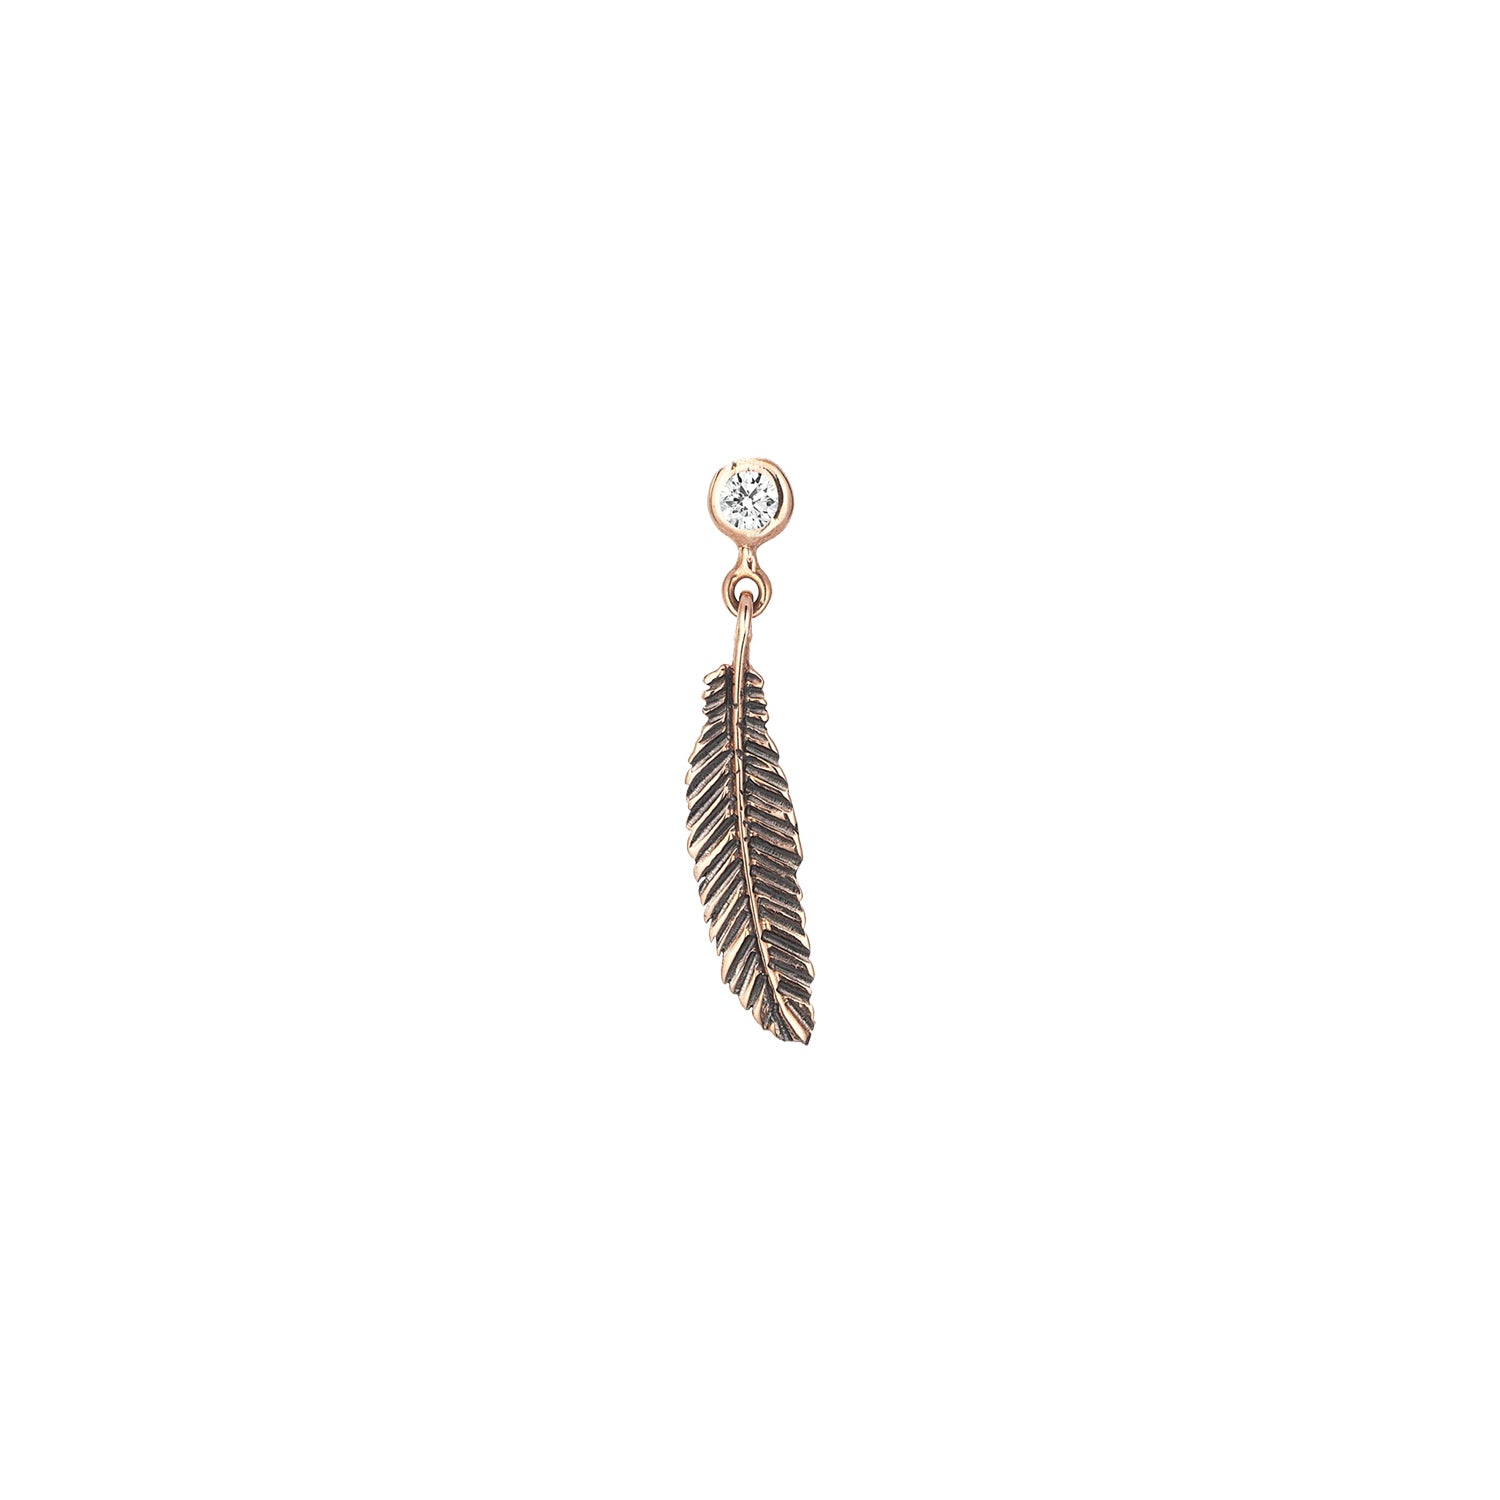 Feather Single Solitaire Earring by Kismet for Broken English Jewelry